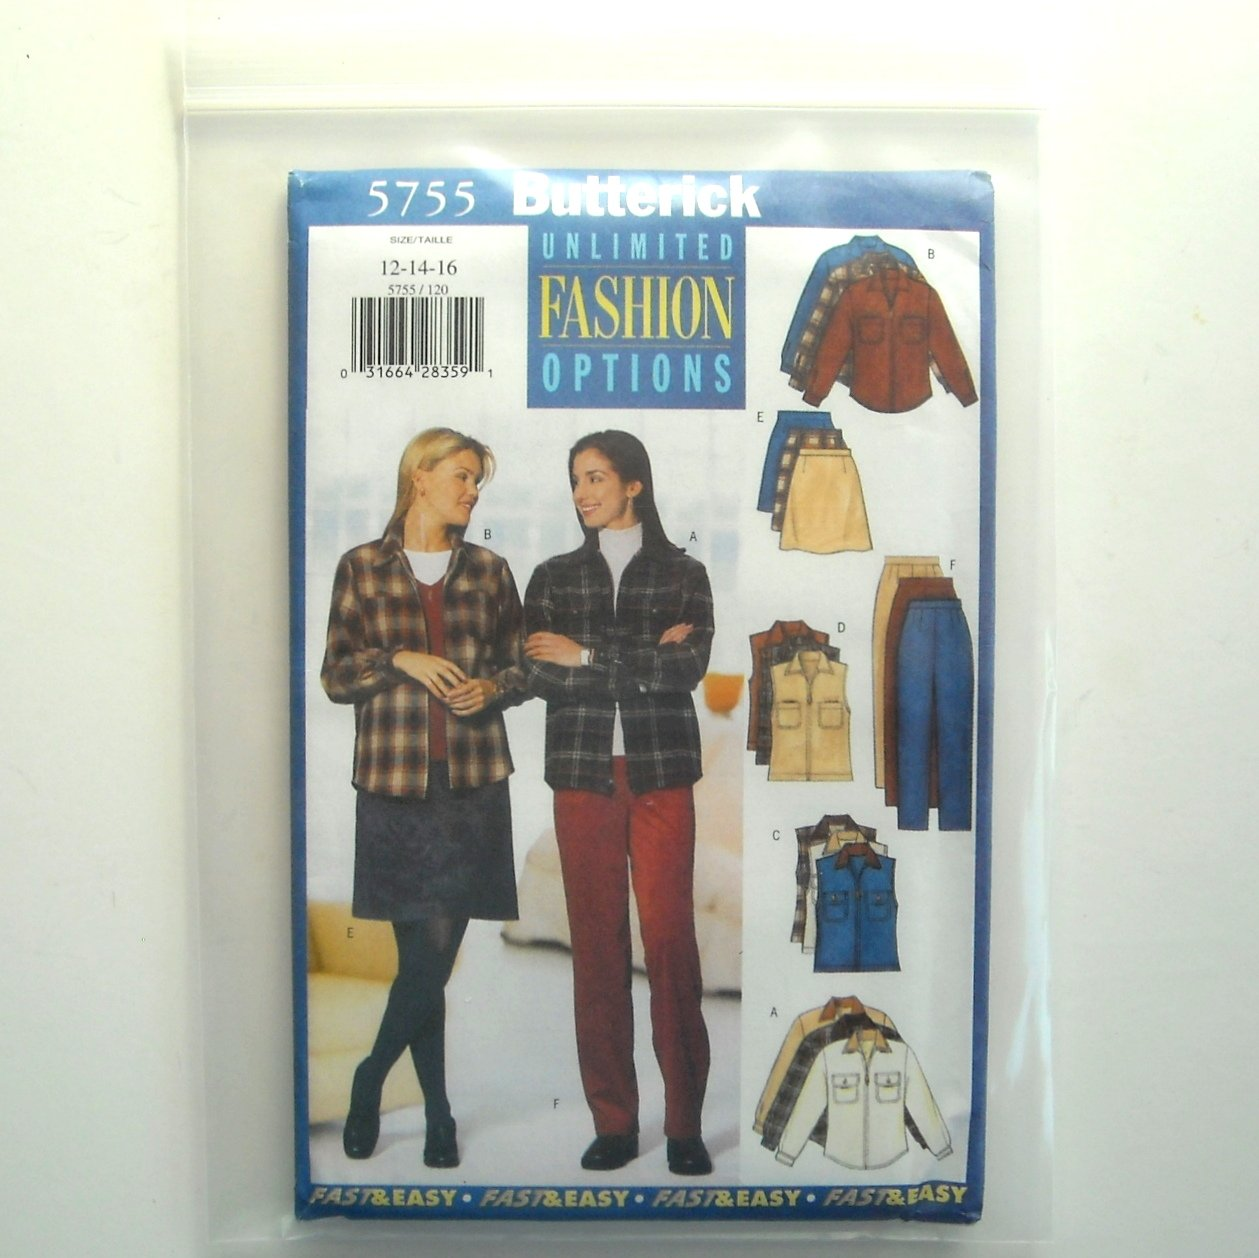 Misses Petite Shirt Vest Skirt Pants Fashion 12 14 16 Vintage Butterick Sewing Pattern 5755